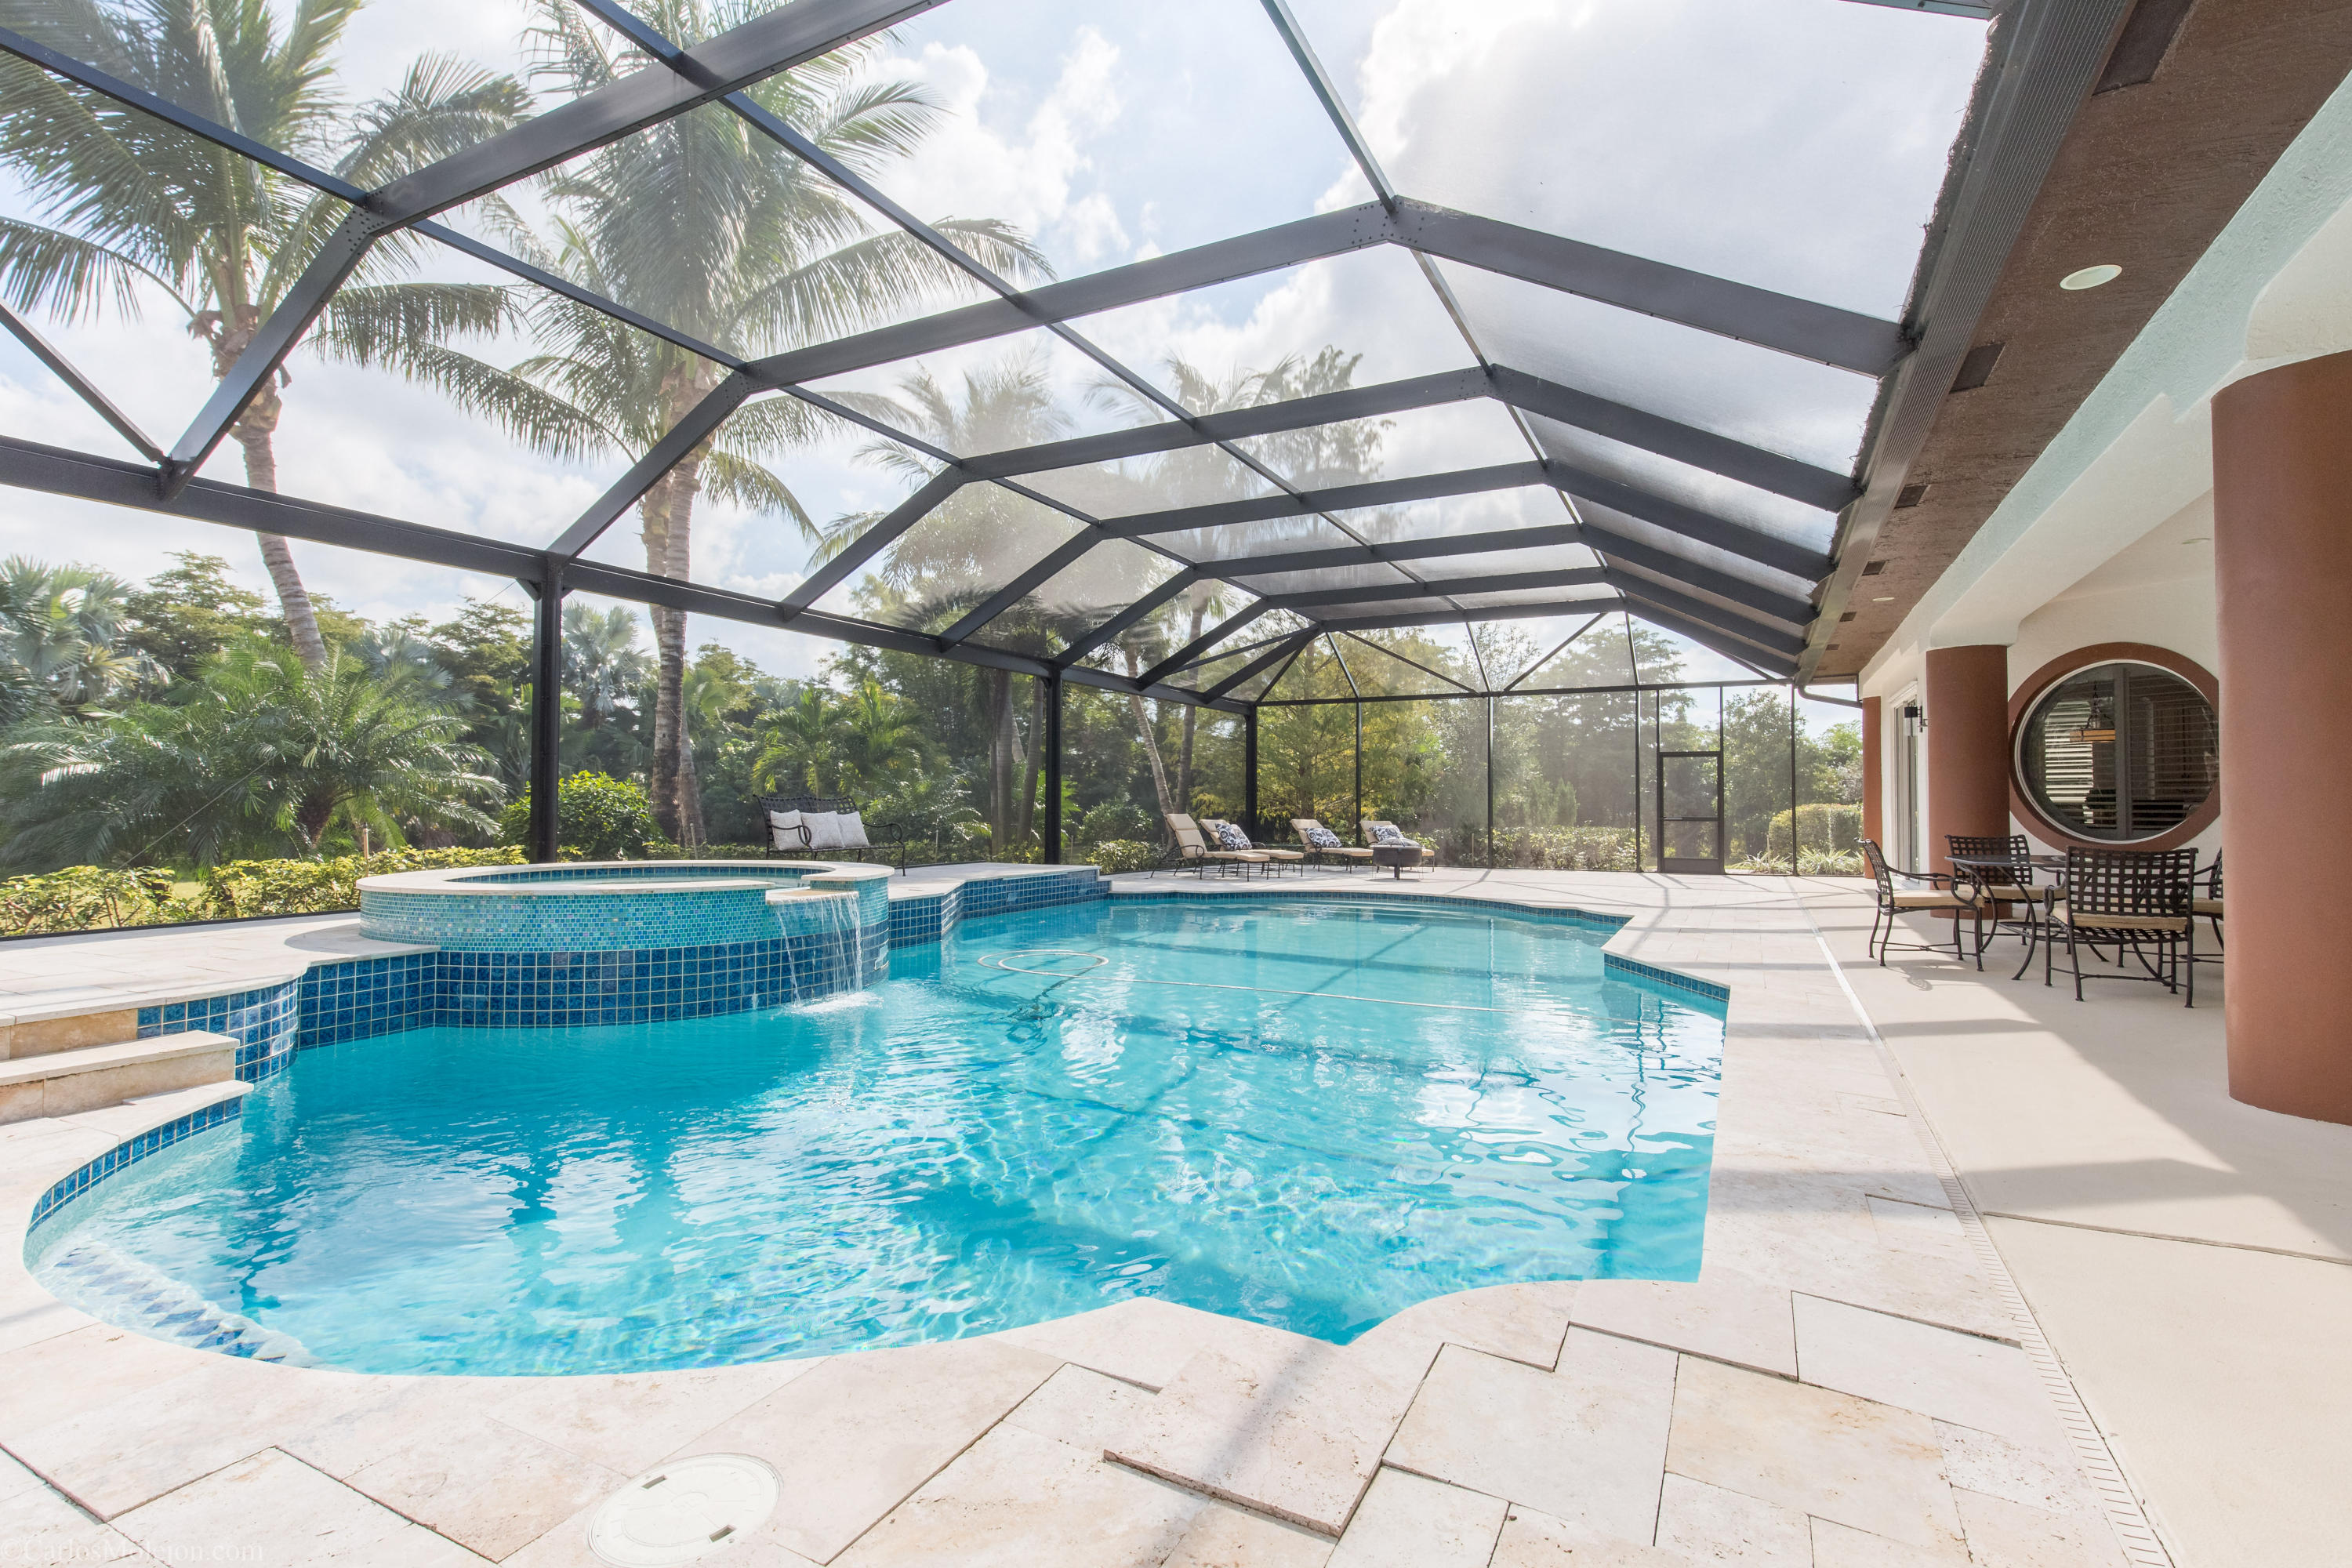 15194 Sunnyland Lane, Wellington, Florida 33414, 4 Bedrooms Bedrooms, ,3 BathroomsBathrooms,Single Family,For Sale,Palm Beach Point,Sunnyland,RX-10460354